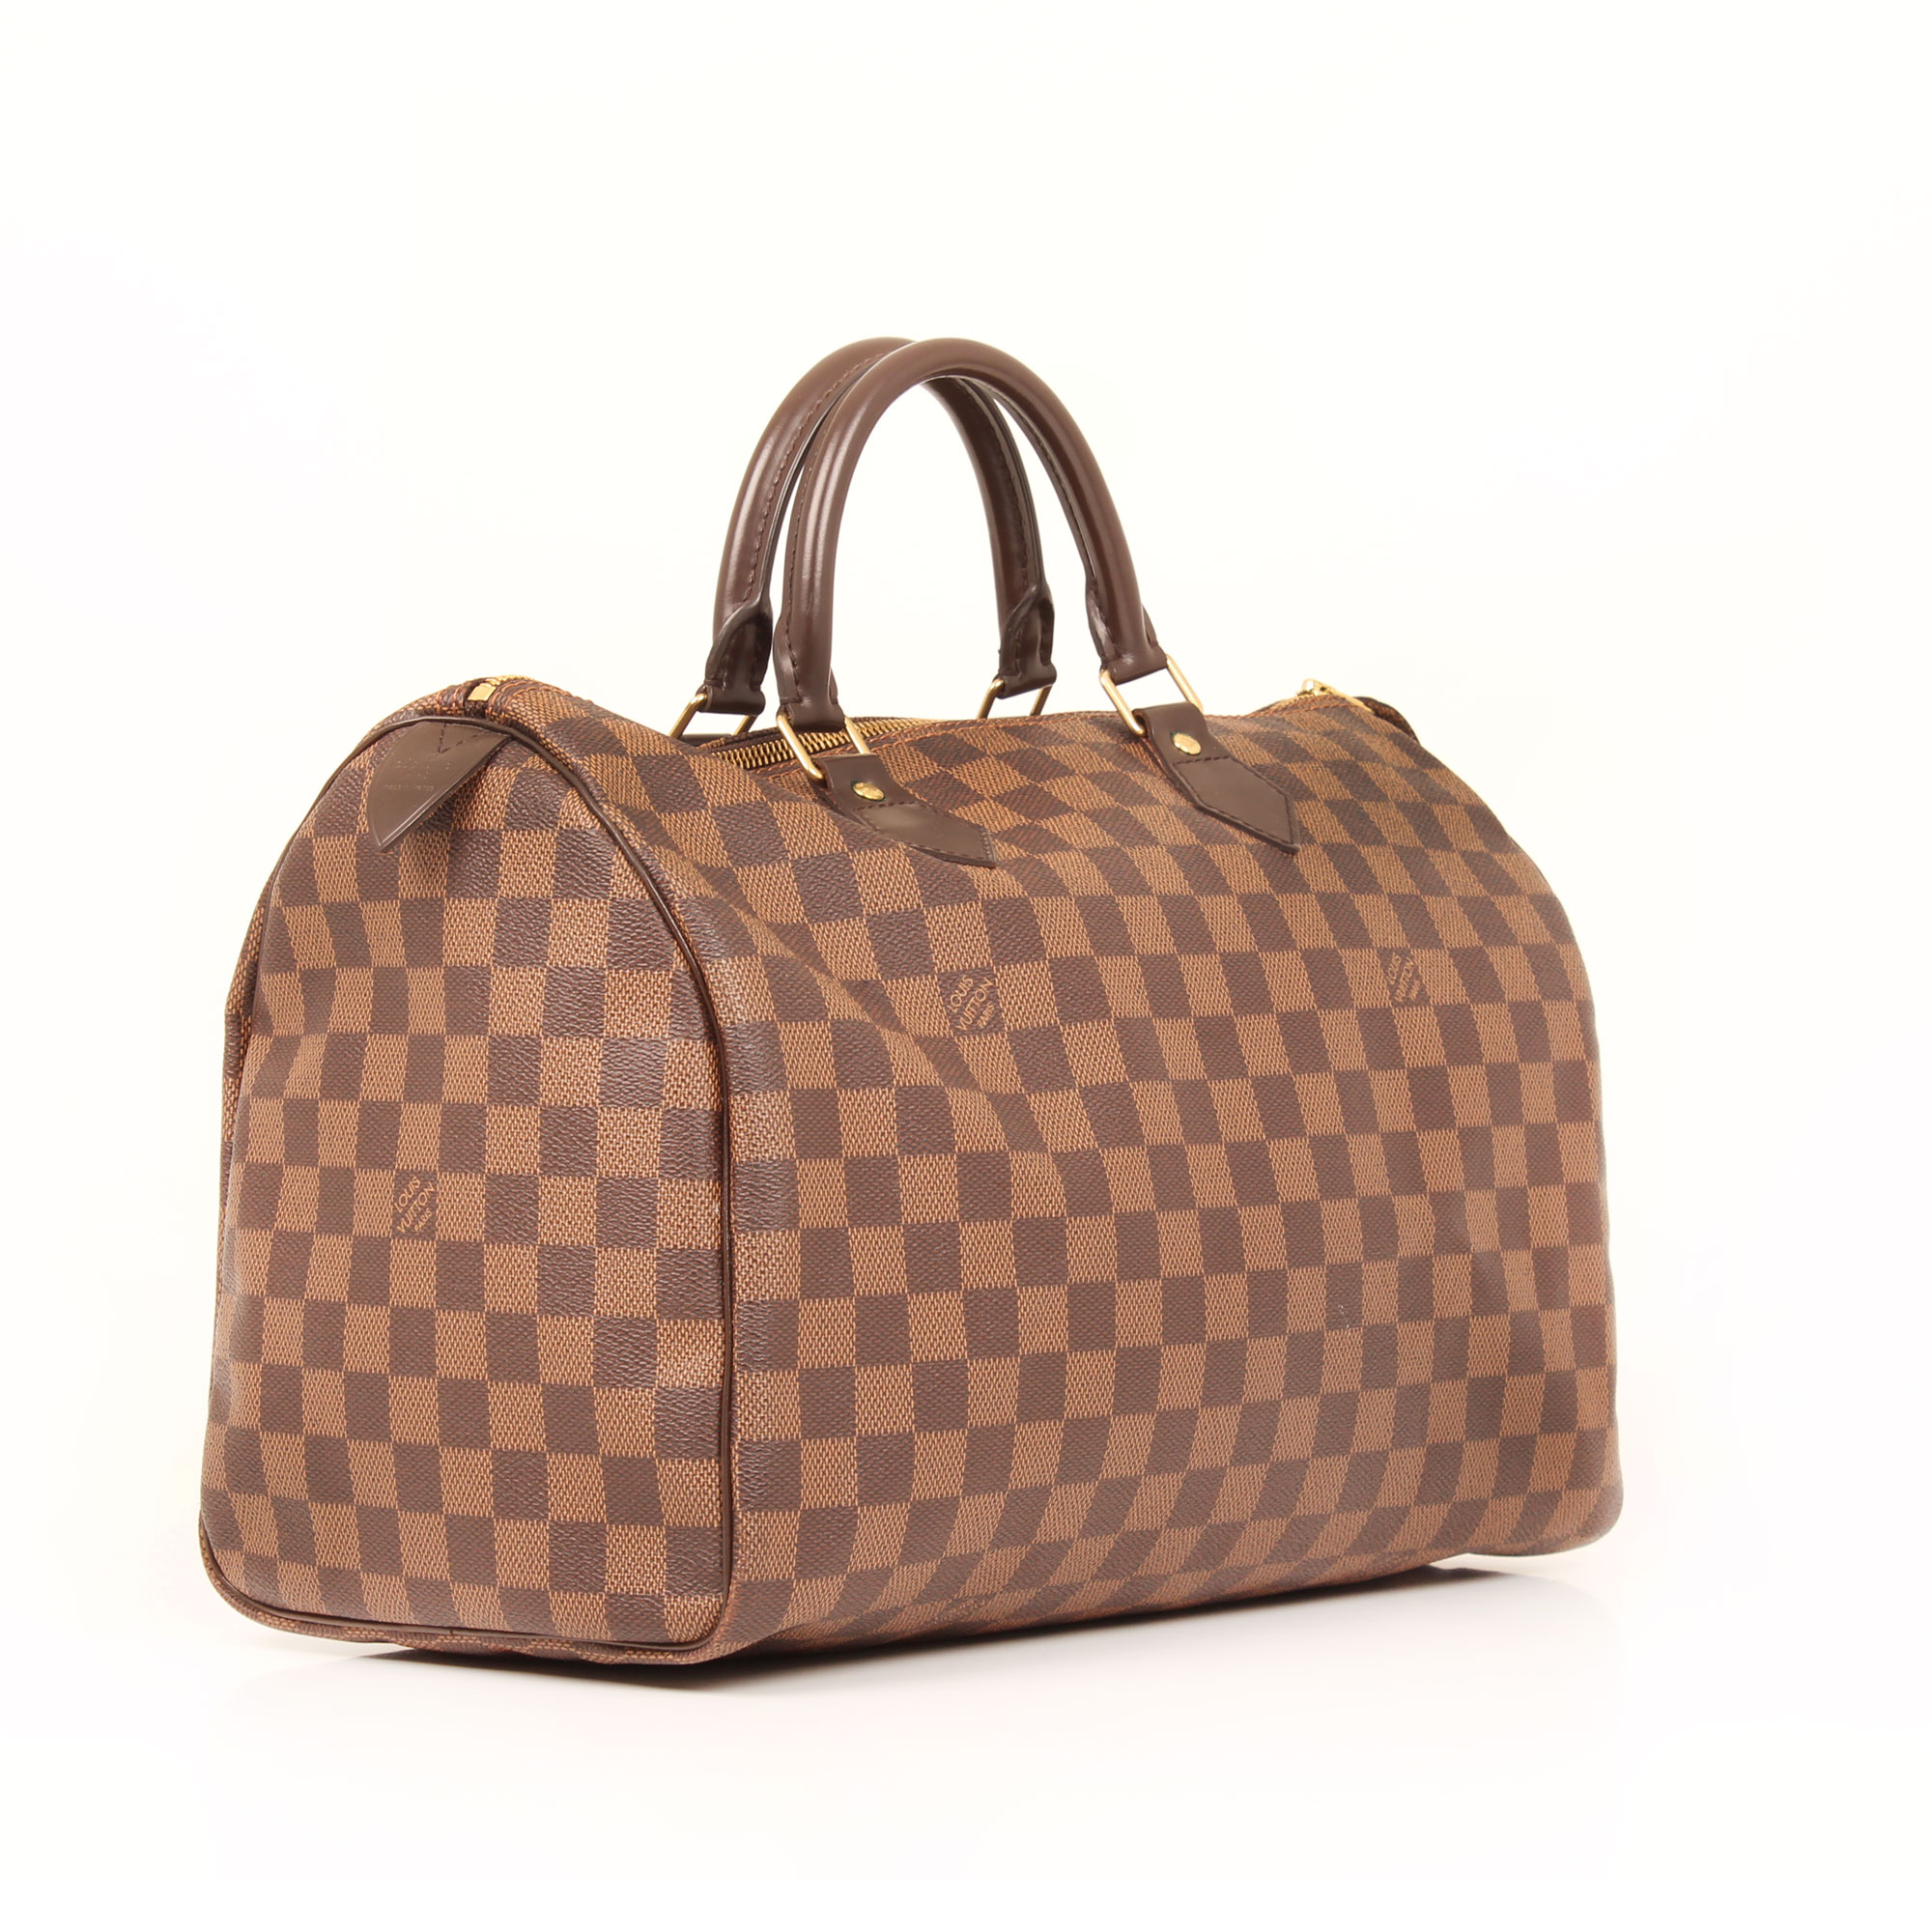 bag-louis-vuitton-speedy-35-damier-ebene-general